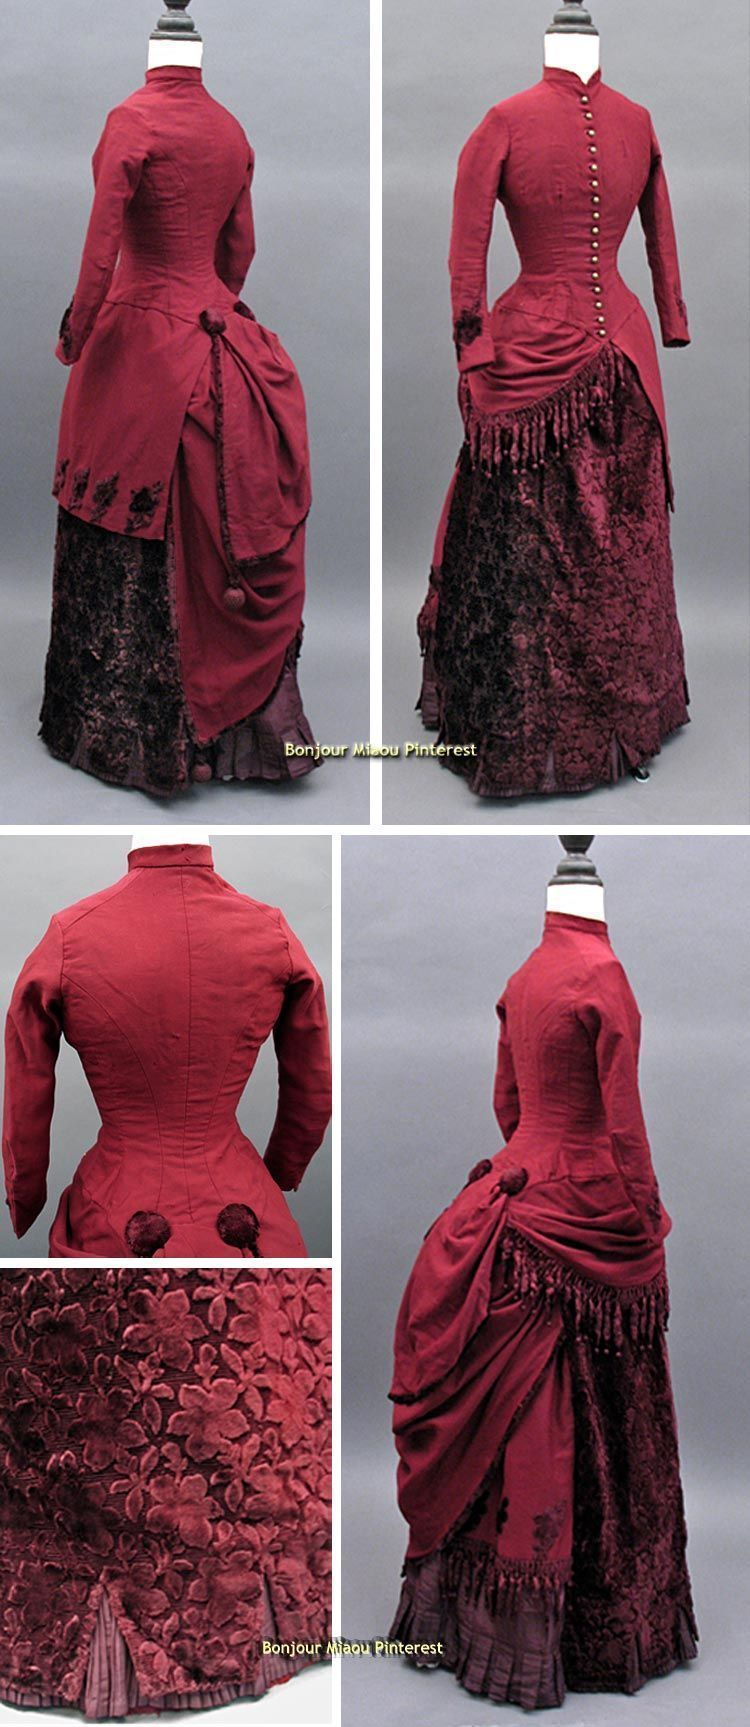 Visiting dress, may be Agnew & English, Philadelphia, ca. 1884. Wine-colored wool and cut velvet. Chenille fringe; tassels in back. Past Perfect Vintage via The Wayback Machine #englishdresses1880 Visiting dress, may be Agnew & English, Philadelphia, ca. 1884. Wine-colored wool and cut velvet. Chenille fringe; tassels in back. Past Perfect Vintage via The Wayback Machine #englishdresses1880 Visiting dress, may be Agnew & English, Philadelphia, ca. 1884. Wine-colored wool and cut velvet. Chenille #englishdresses1880